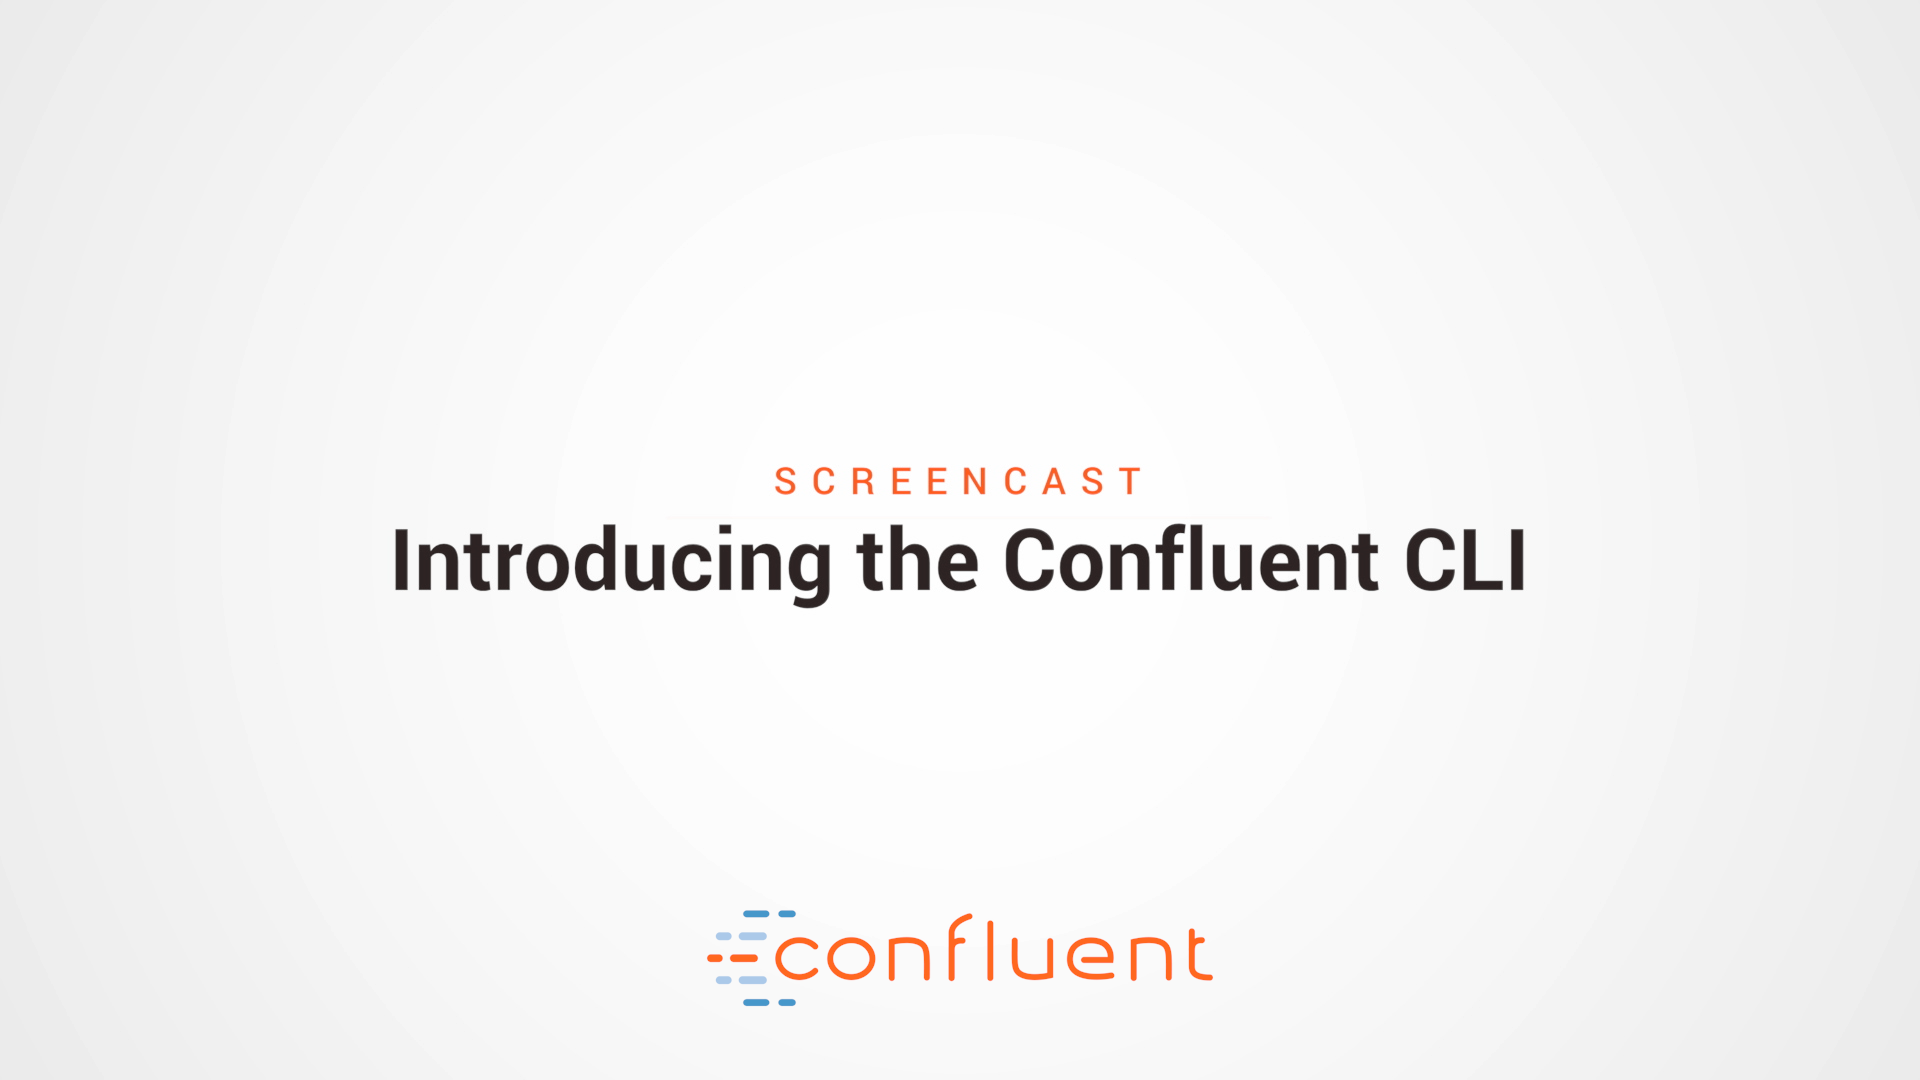 Introducing the Confluent CLI